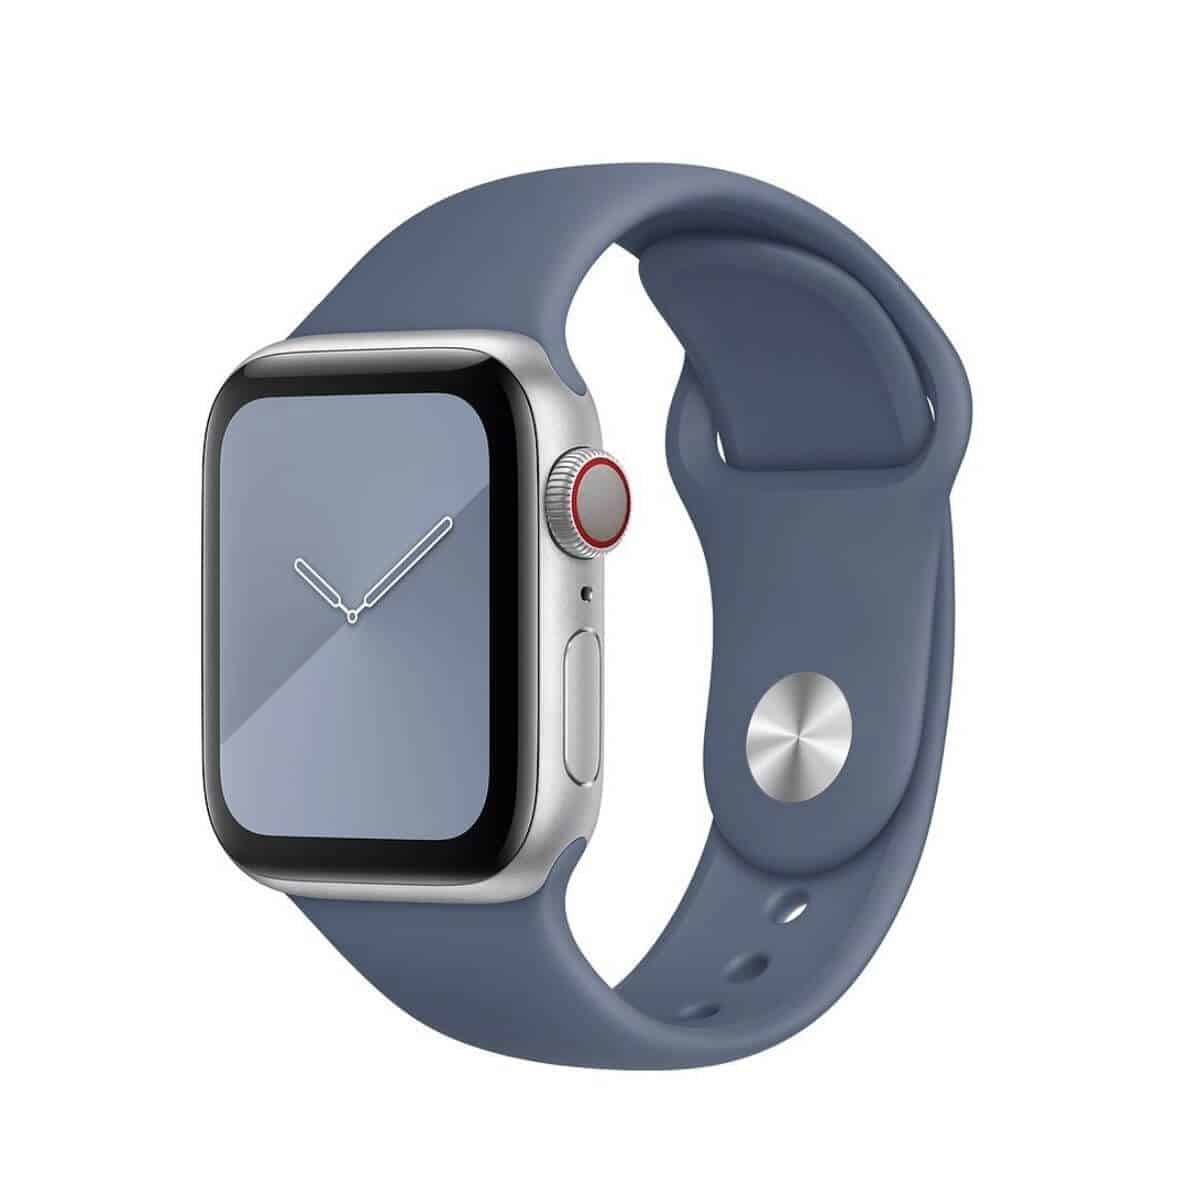 Apple Watch with a blue silicone band.